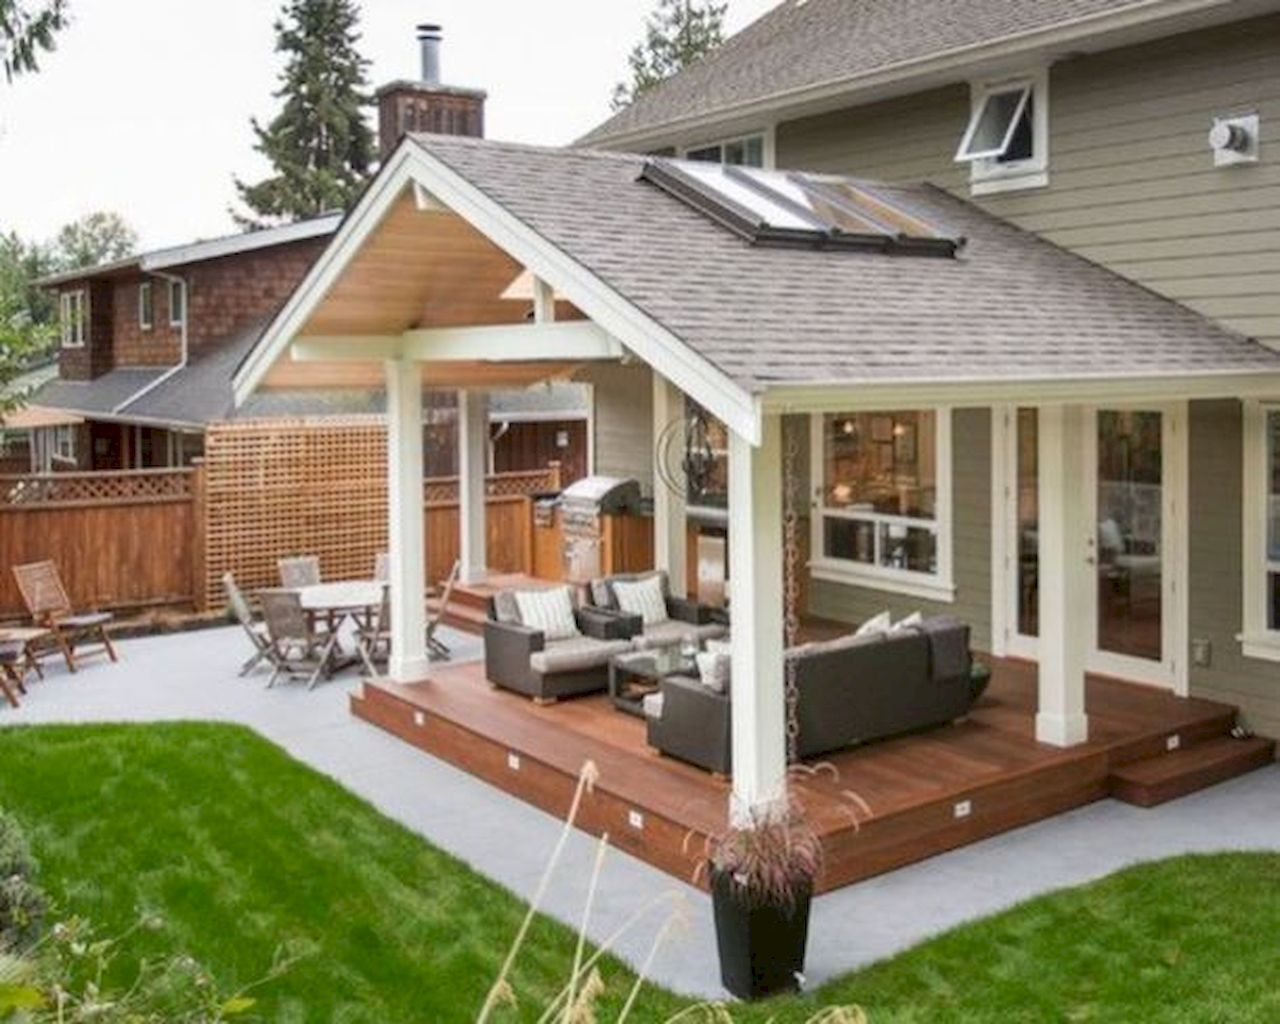 Stunning Backyard Patio And Deck Design Ideas 14 Homeideas Co